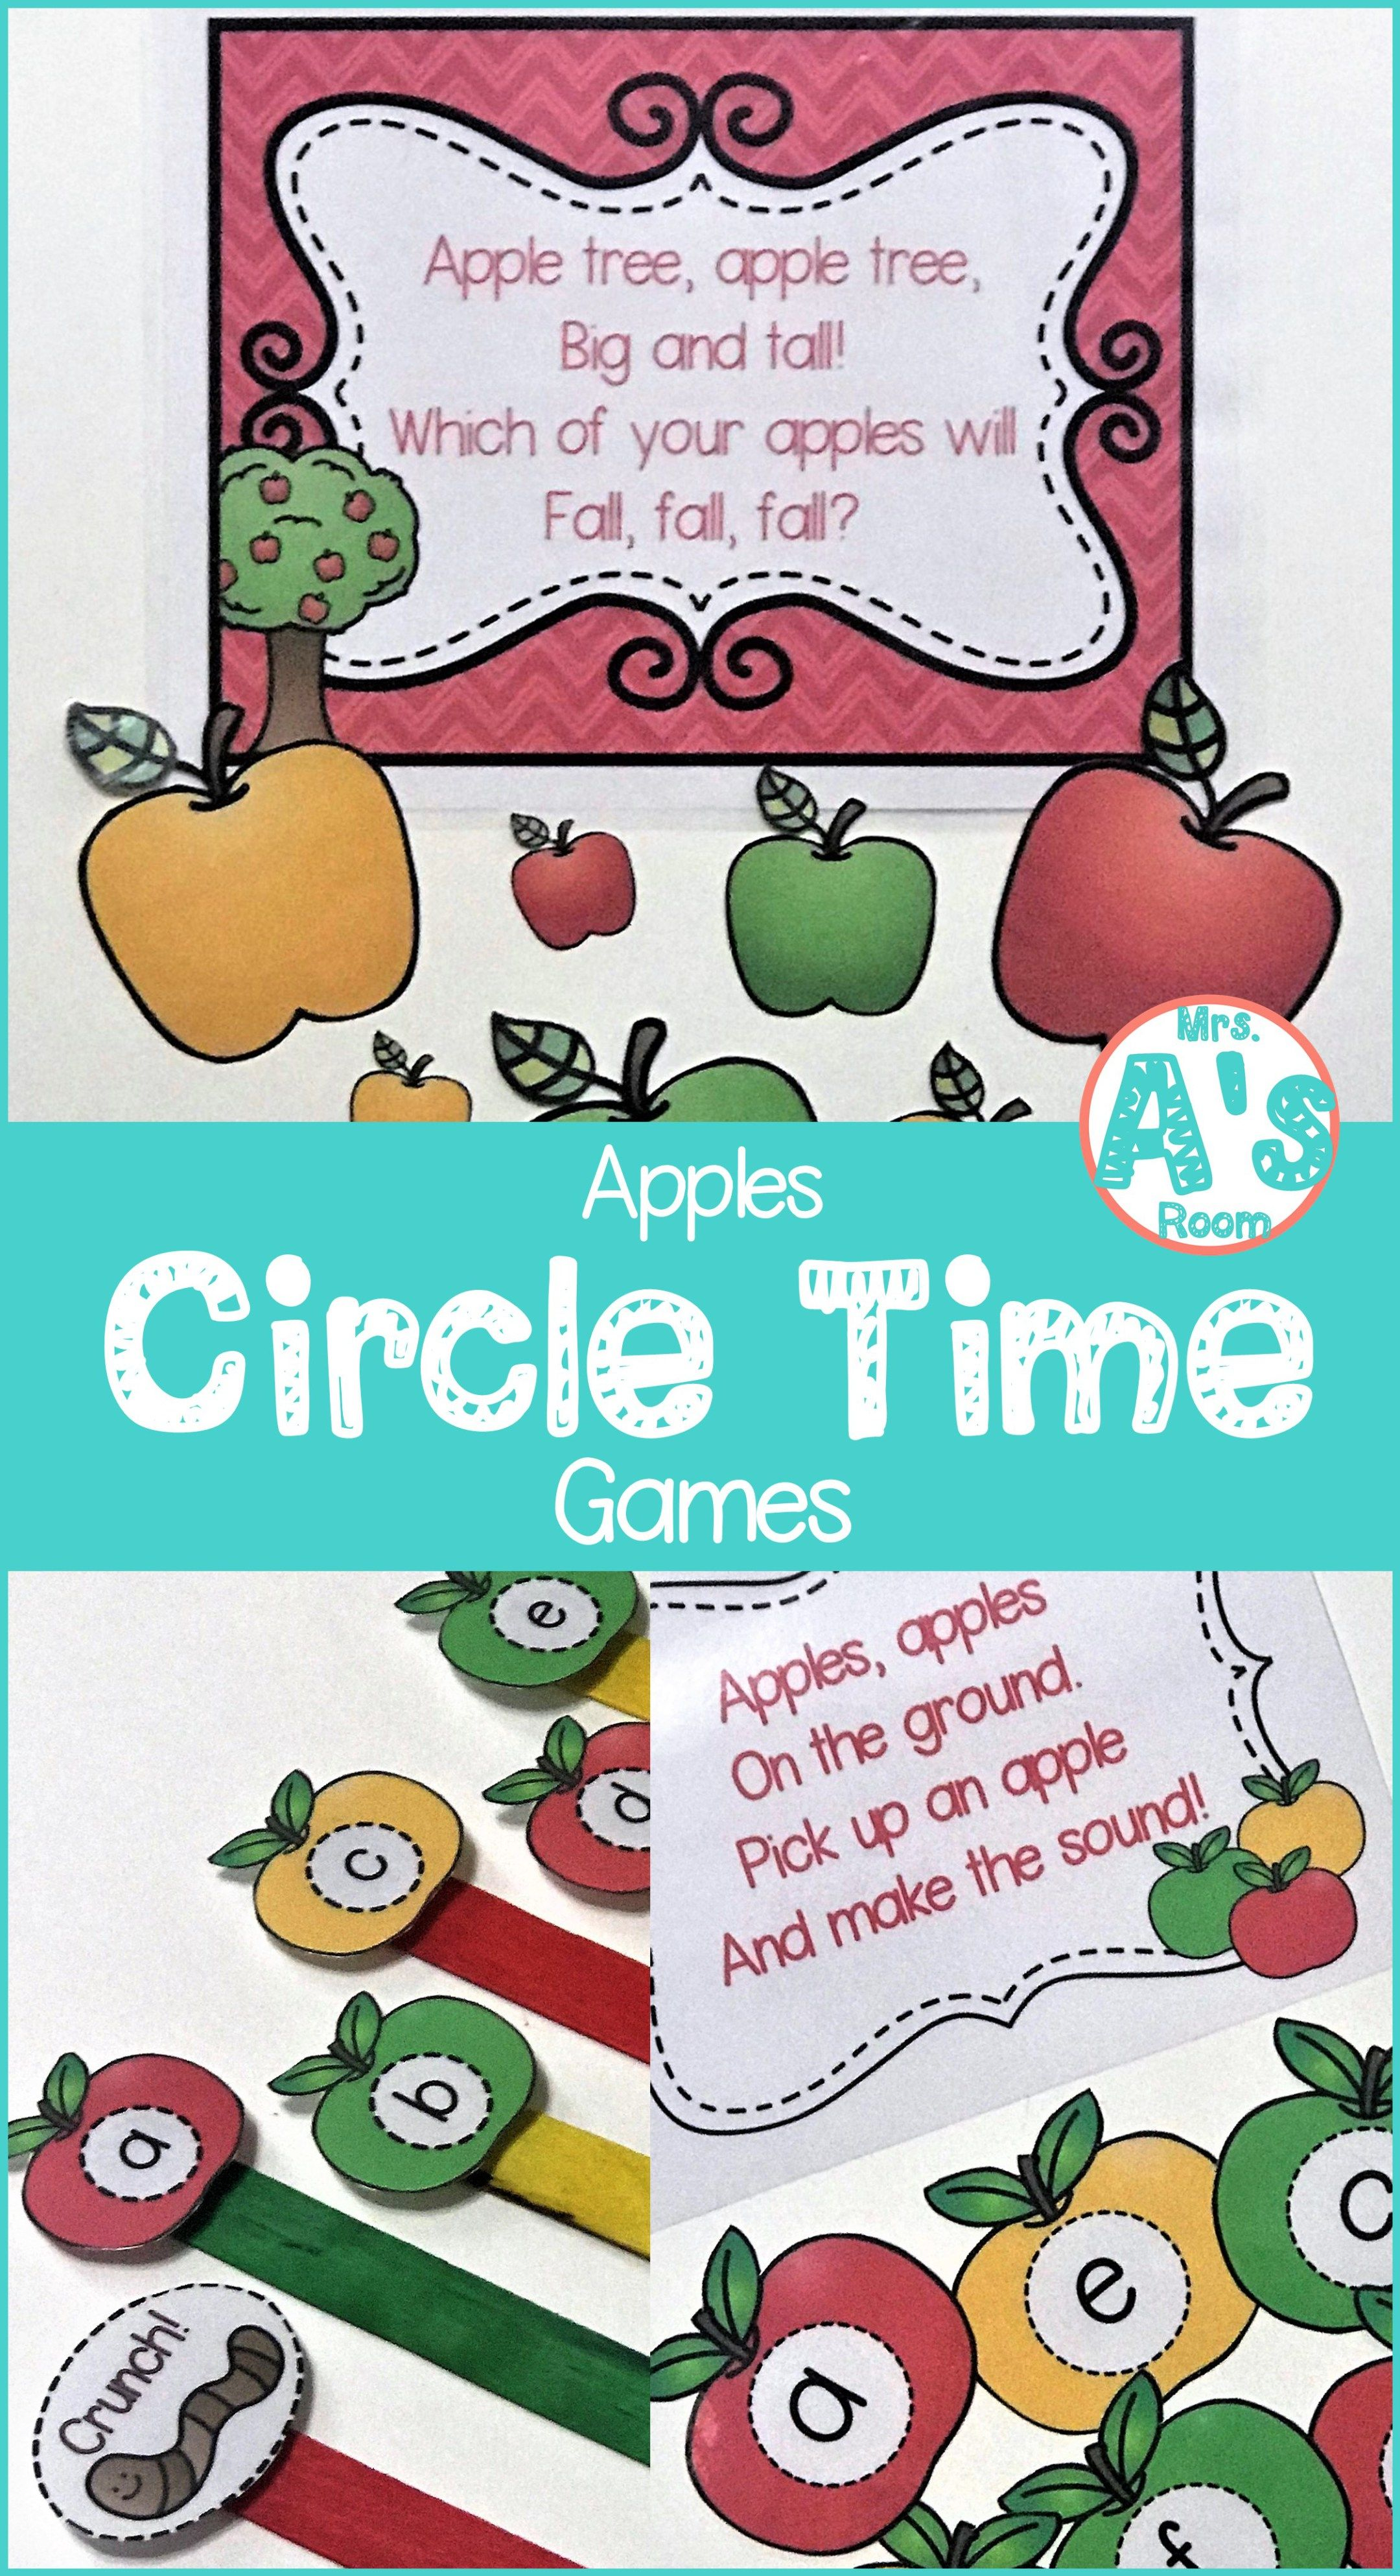 Apple Themed Circle Time Games